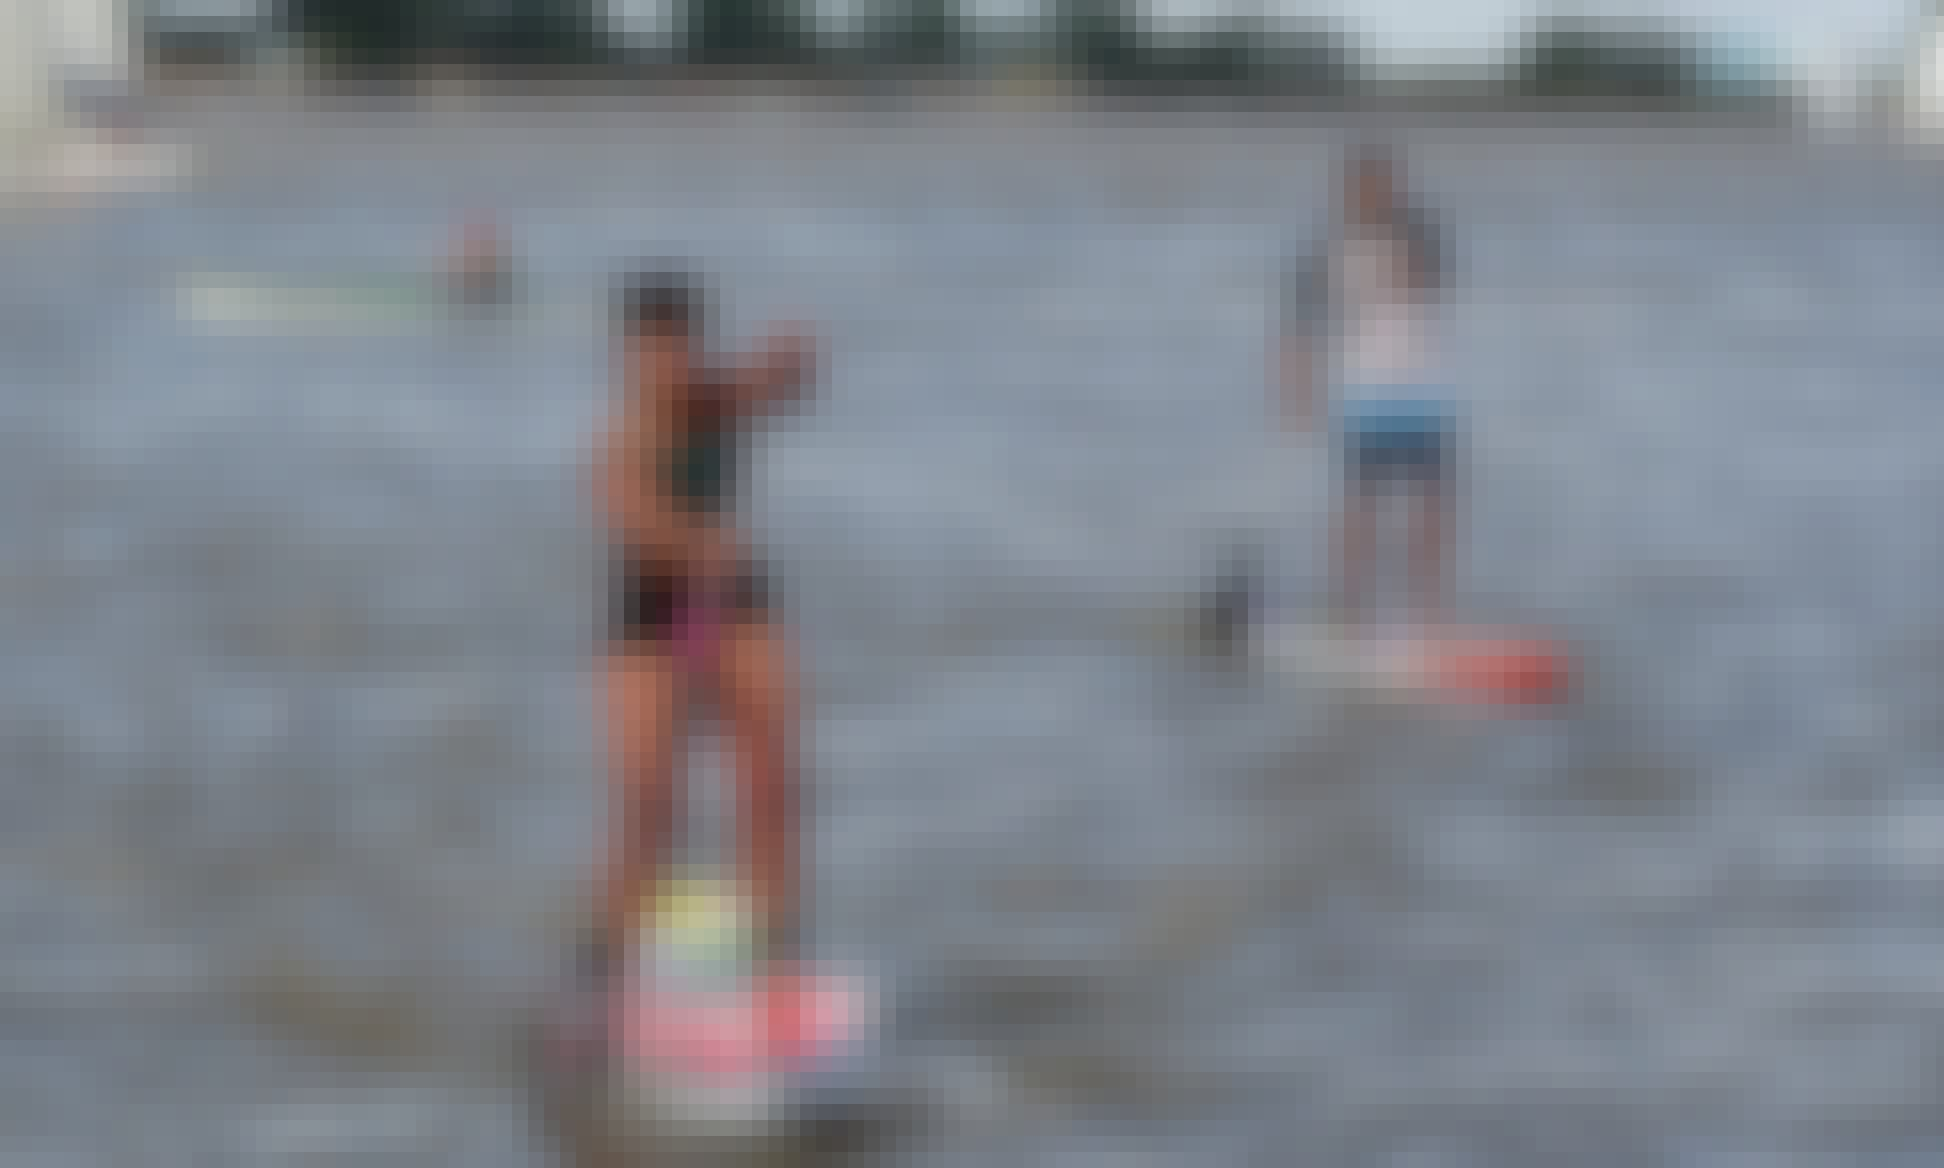 Private Paddleboard Lesson with Professional Instructor in Rosario, Argentina